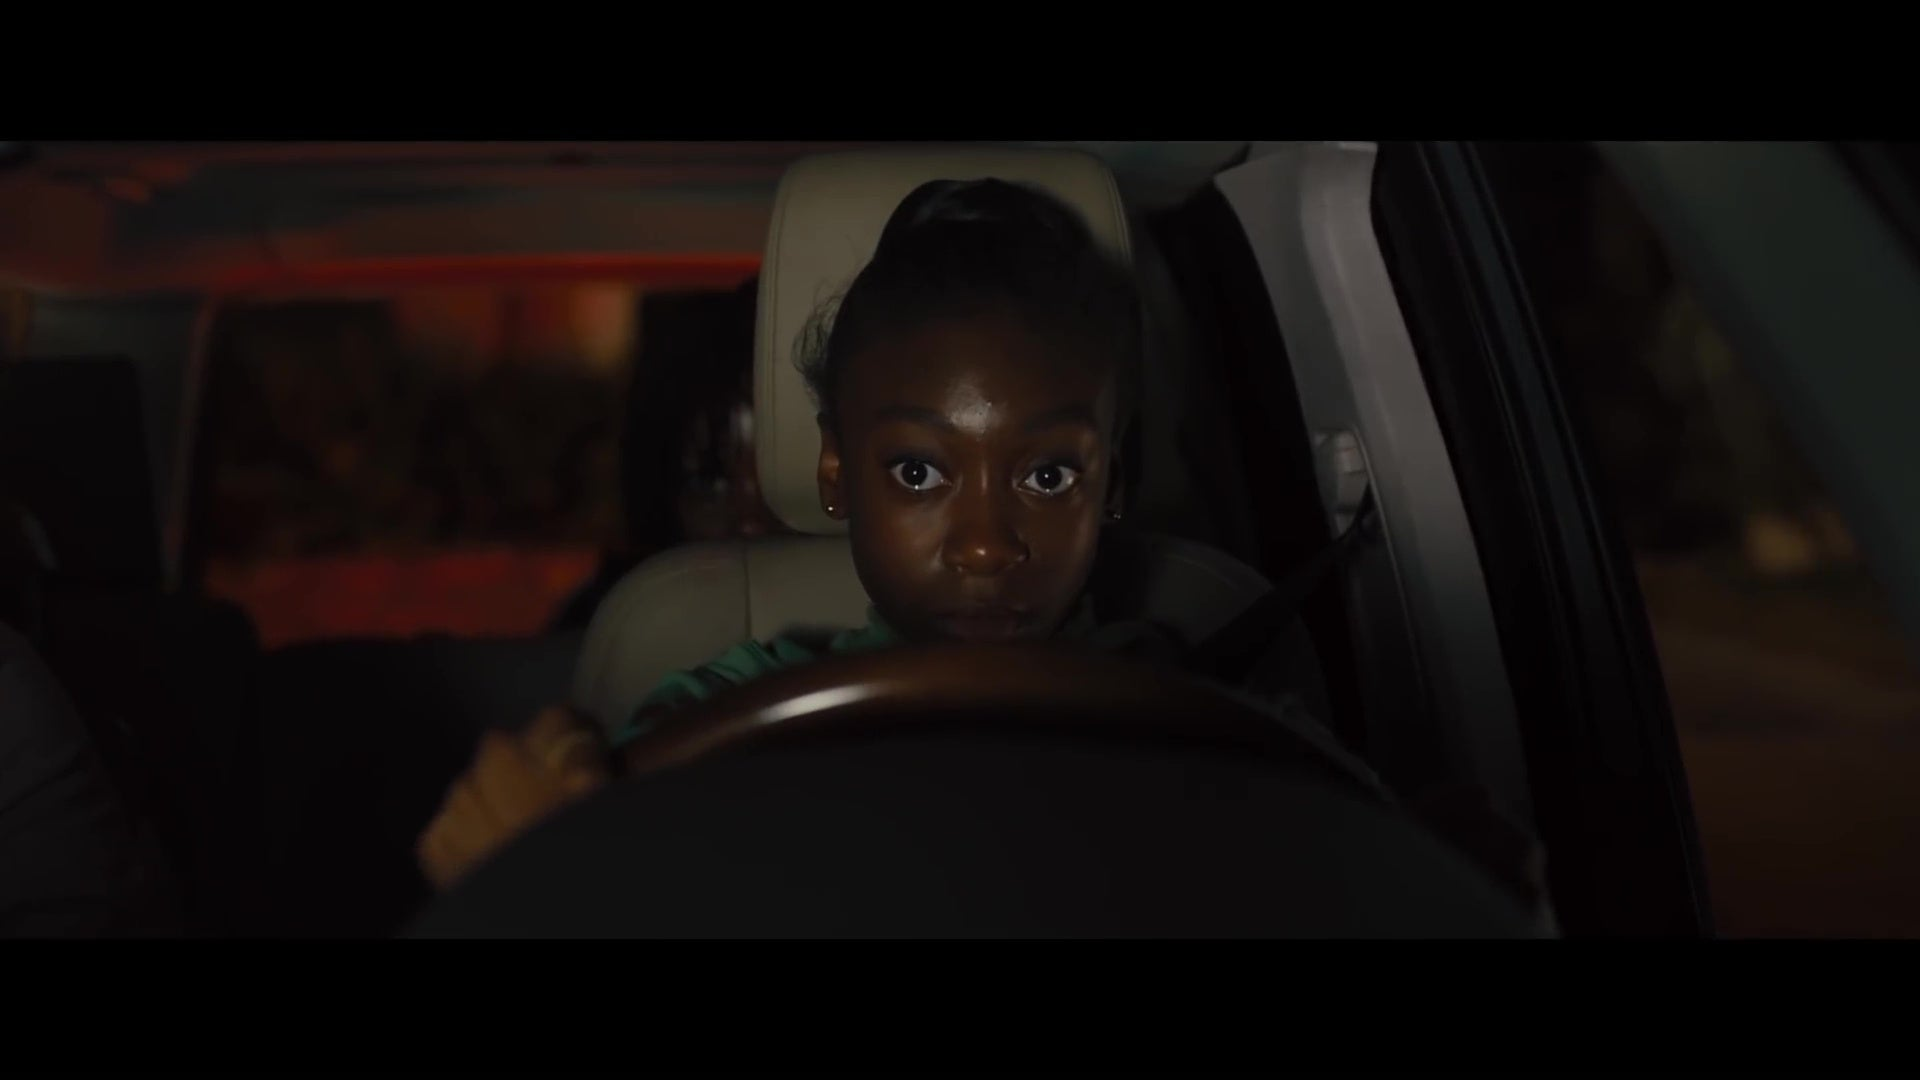 Shahadi Wright Joseph behind the wheel of a car.